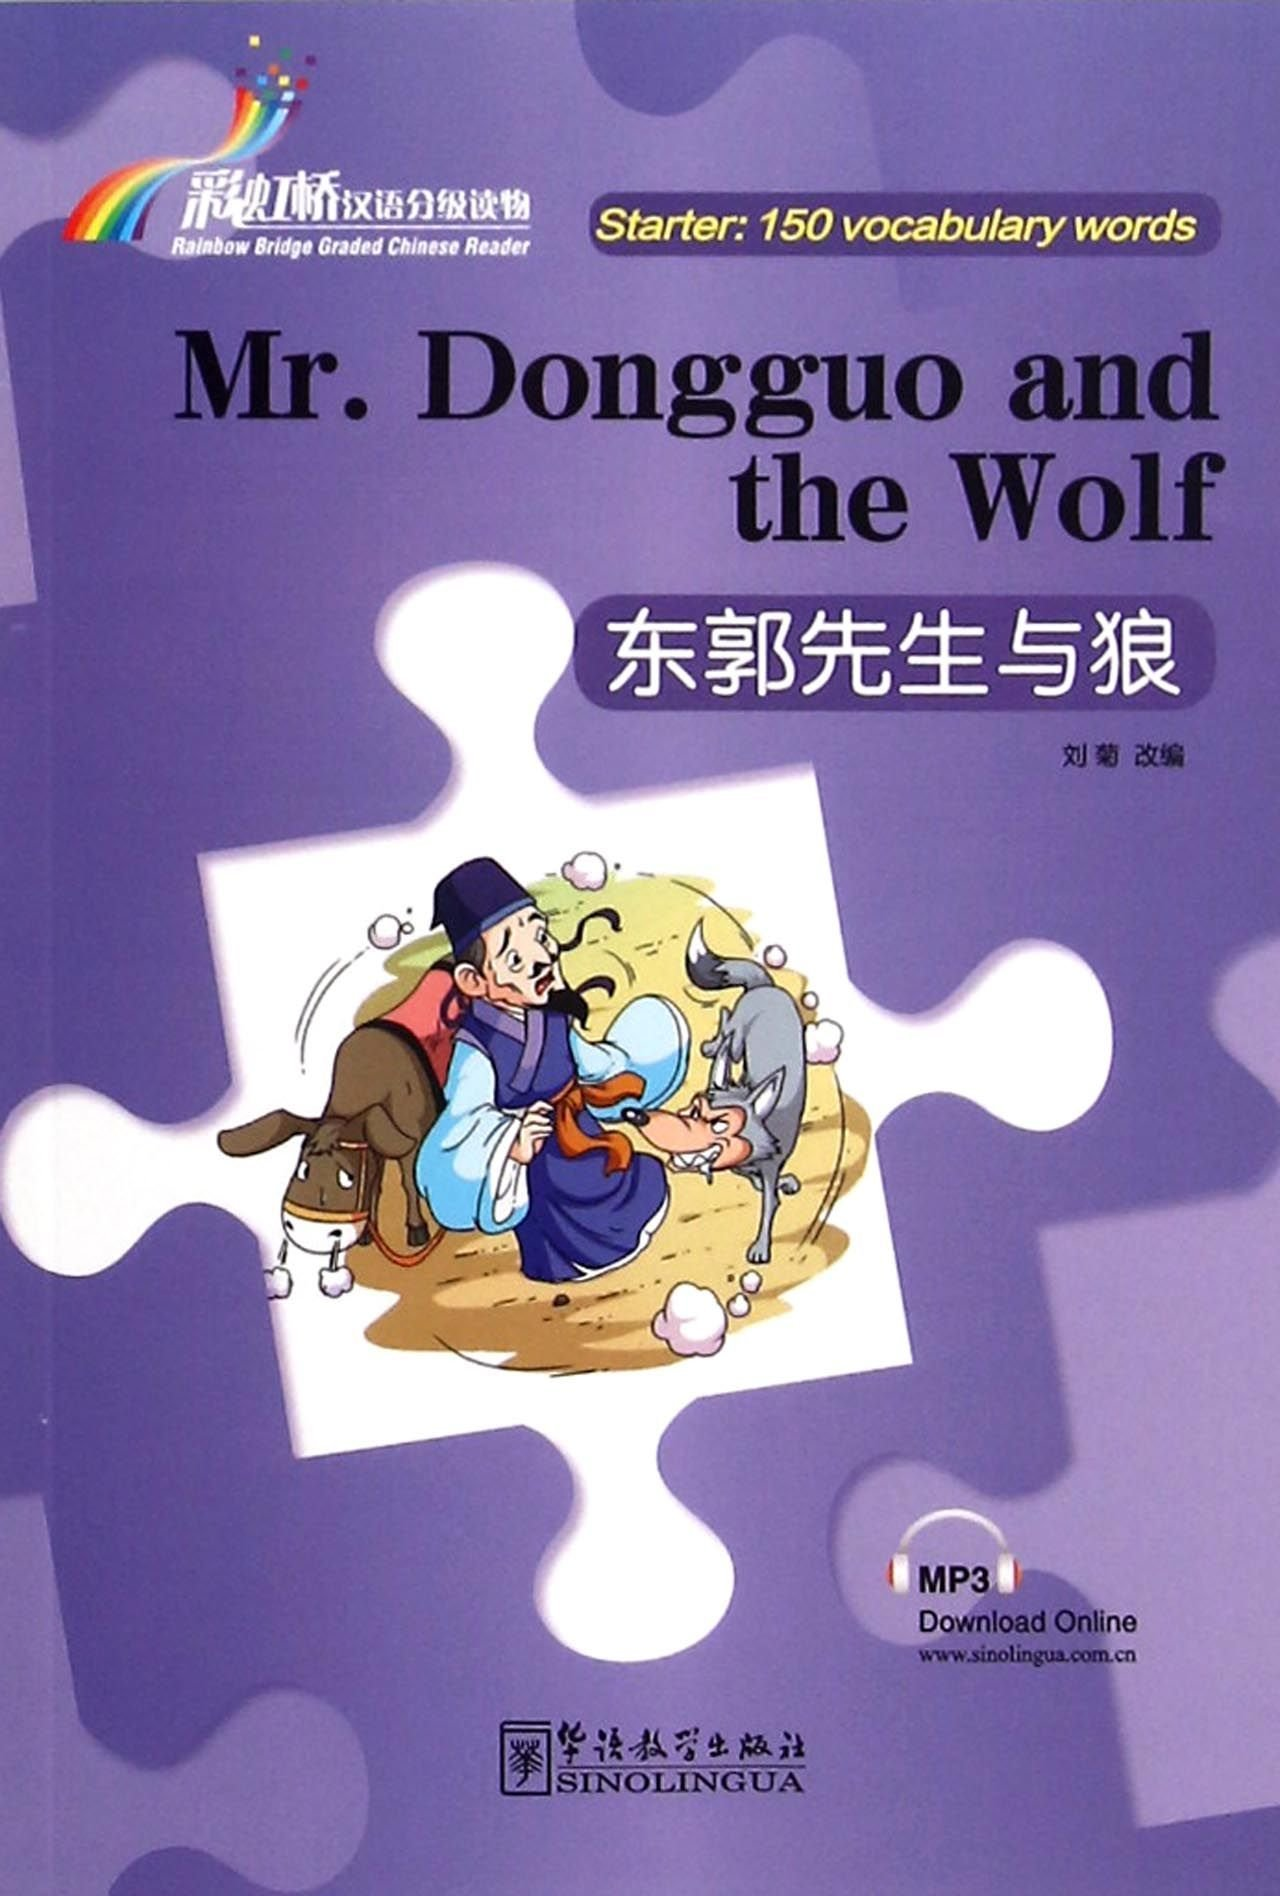 Mr. Dongguo and the Wolf - Rainbow Bridge Graded Chinese Reader, Starter : 150 Vocabulary Words (English and Chinese Edition) PDF